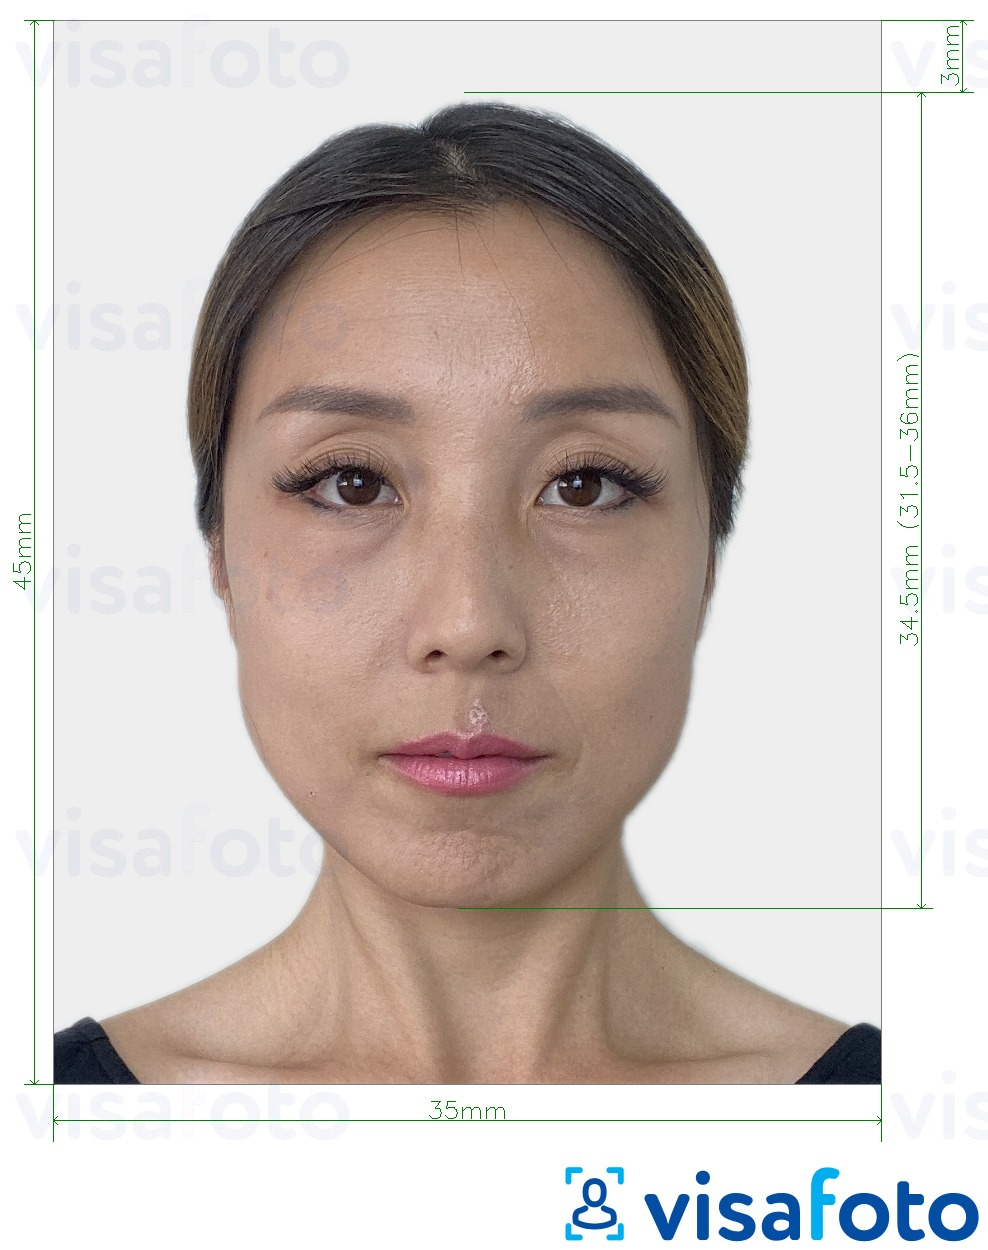 Example of photo for South Korea Visa 35x45 mm with exact size specification